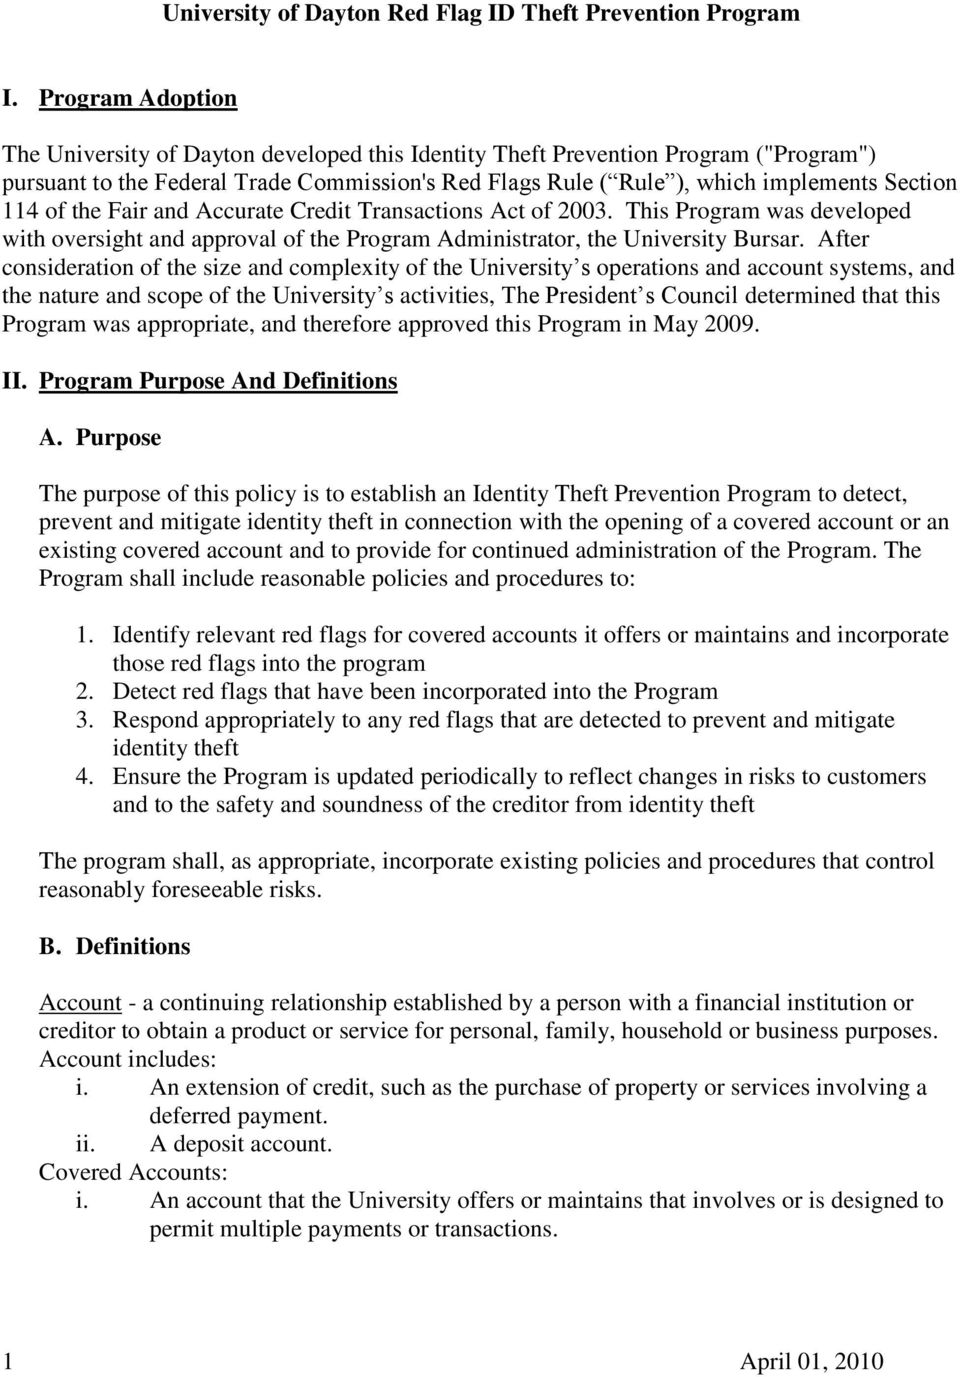 Fair and Accurate Credit Transactions Act of 2003. This Program was developed with oversight and approval of the Program Administrator, the University Bursar.